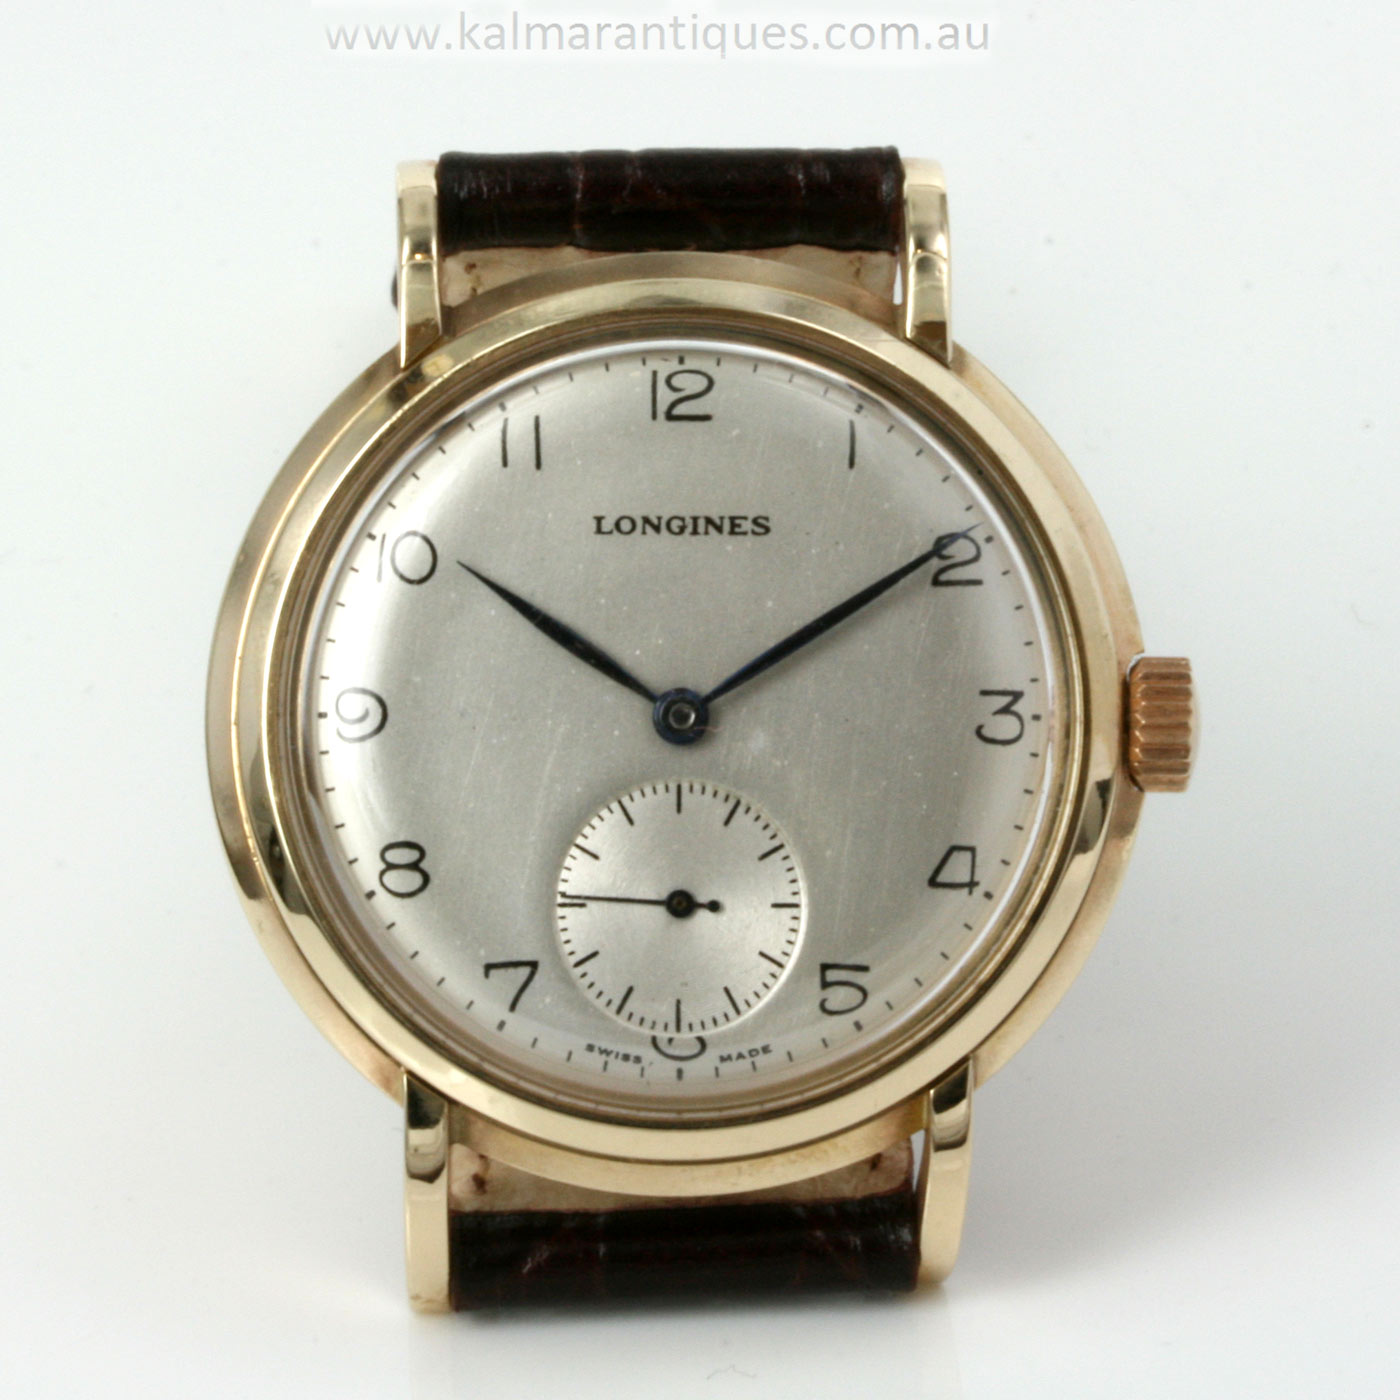 Buy 9ct gold vintage longines watch from 1949 sold items for What watch to buy